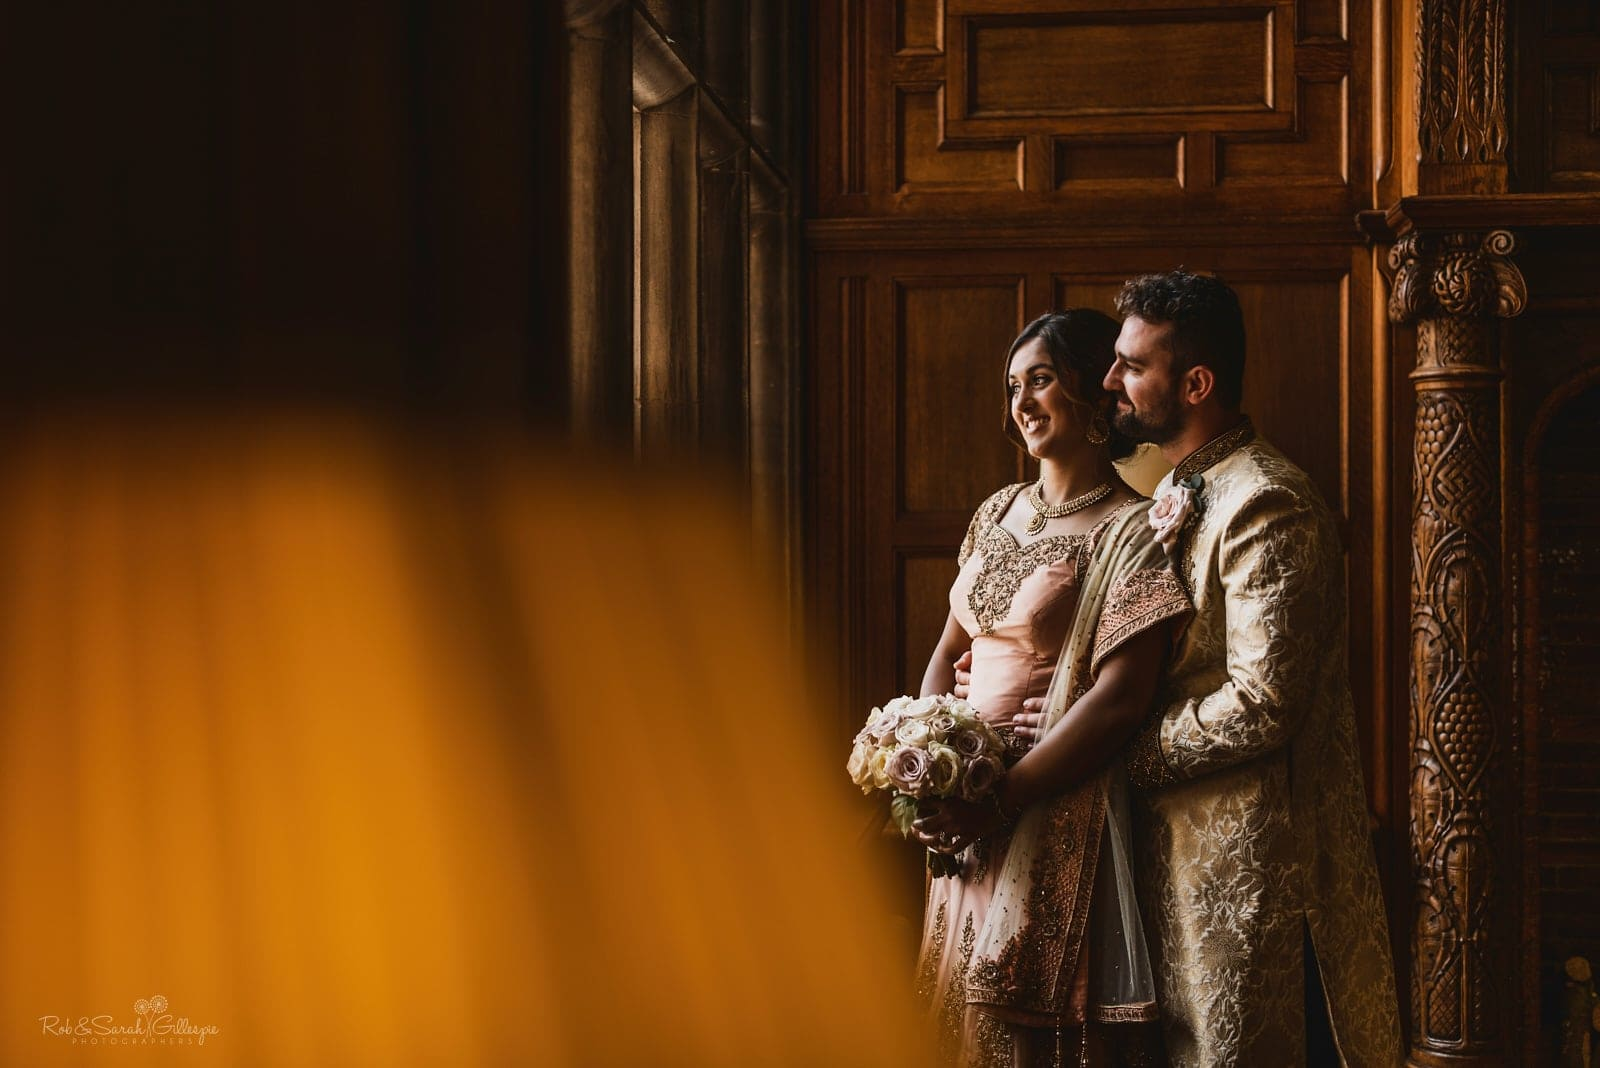 Bride and groom in Indian wedding outfits in beautiful window light